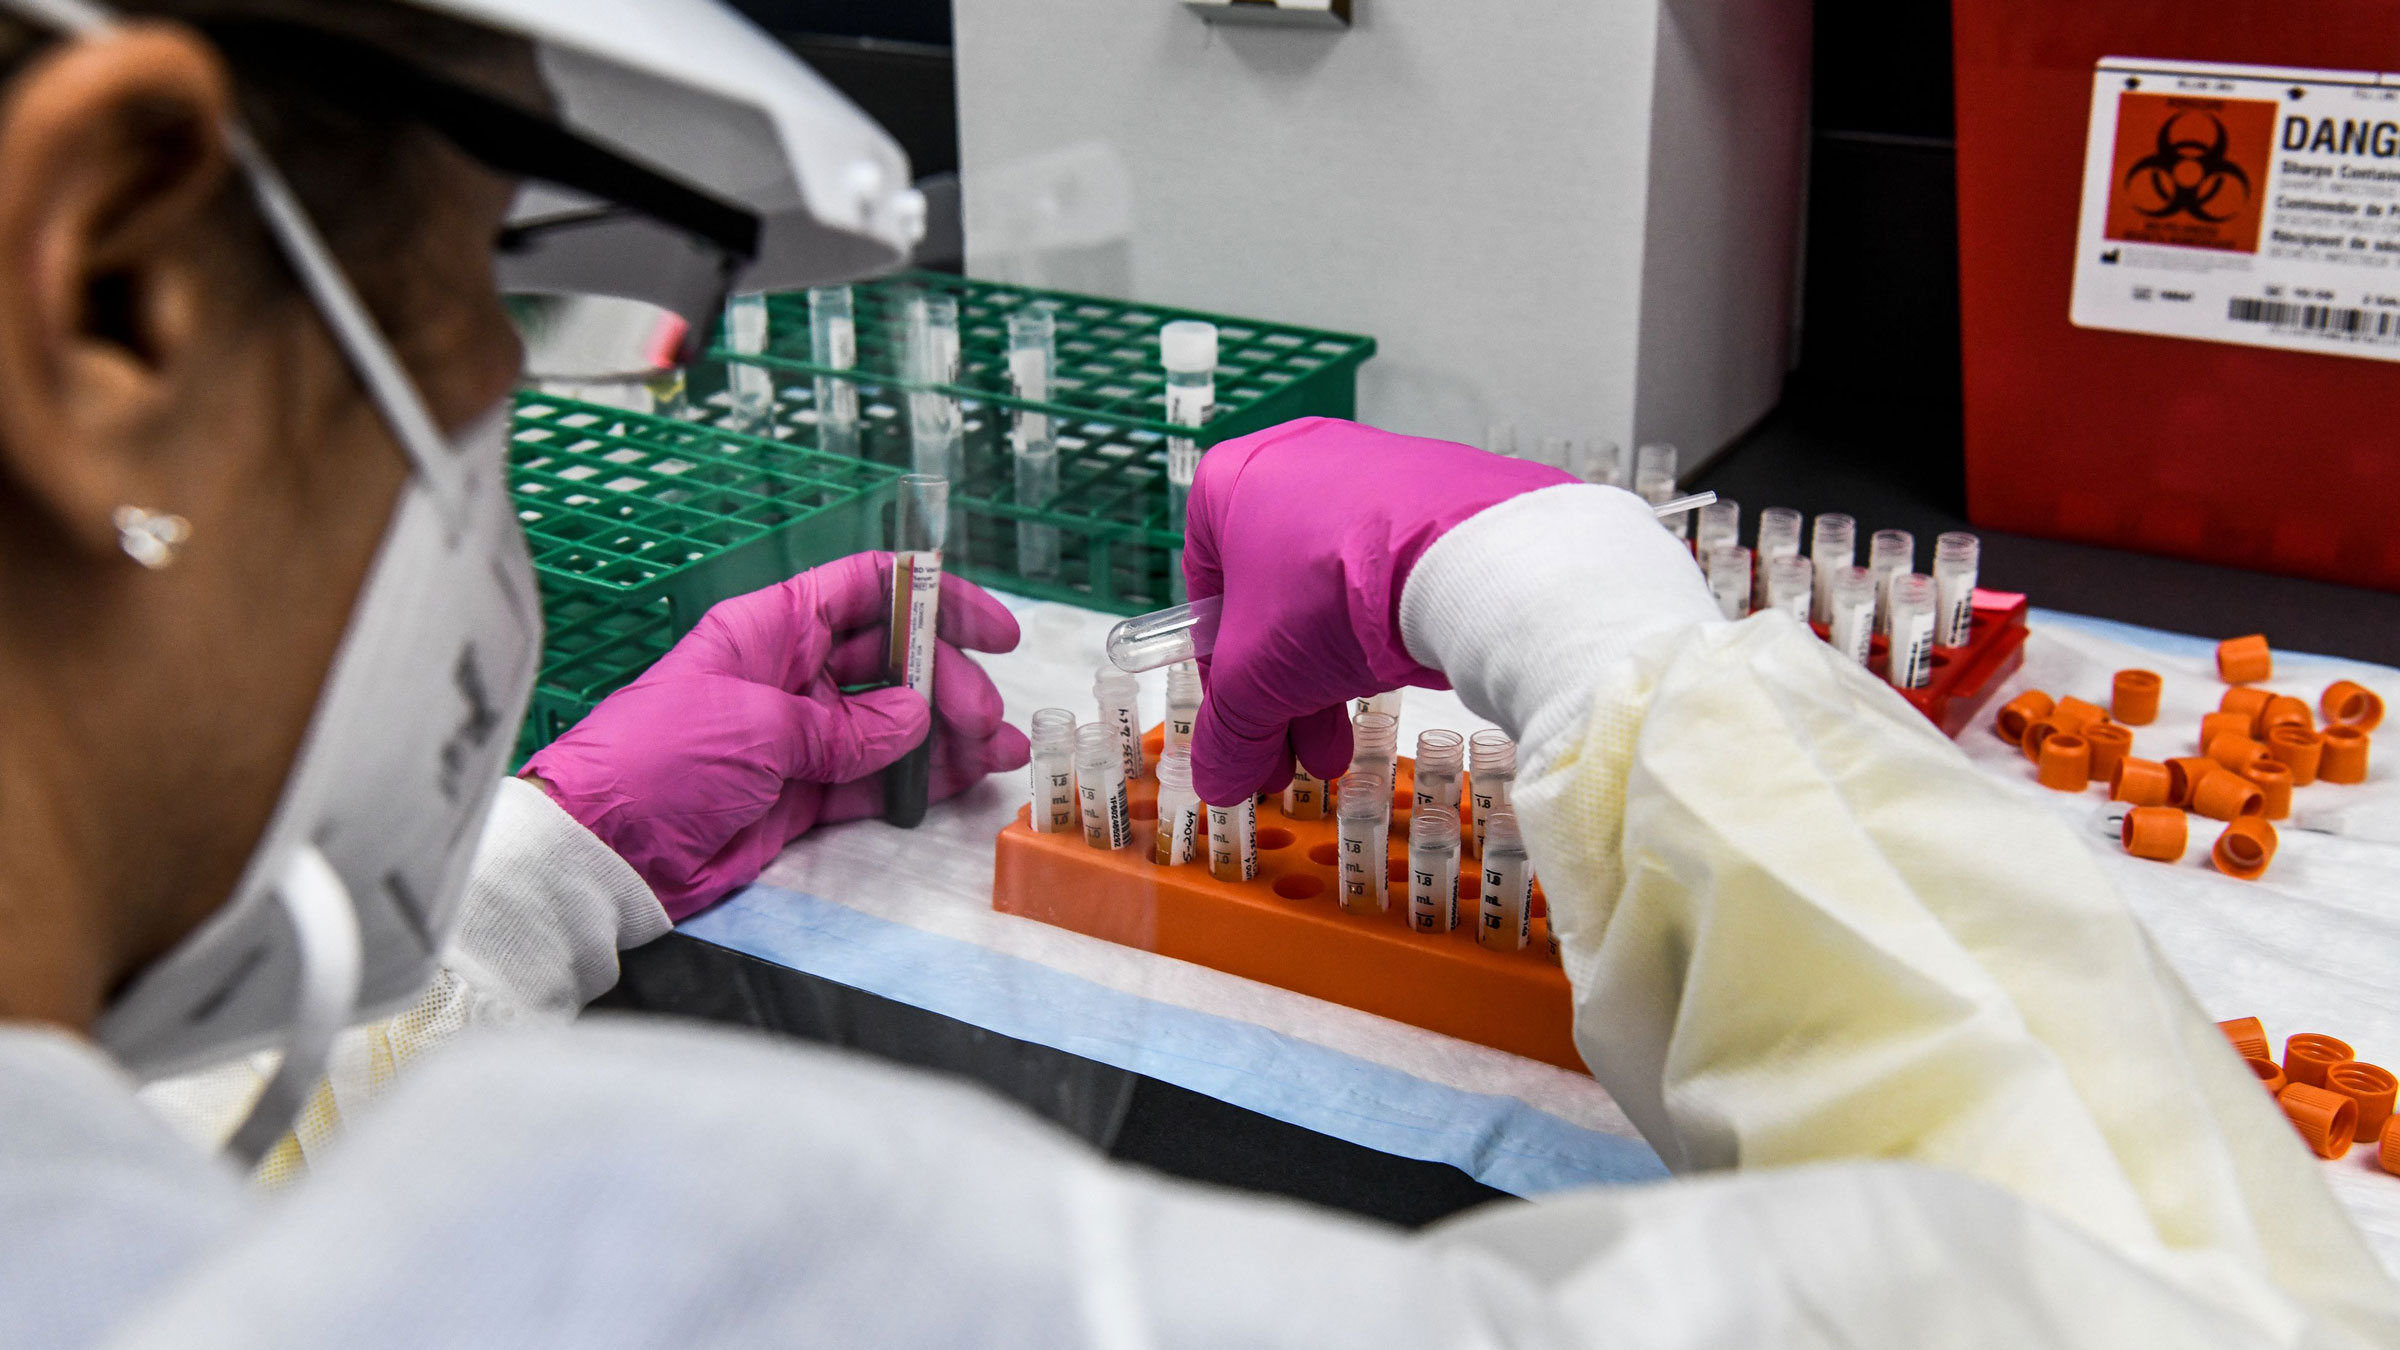 A lab technician sorts blood samples as part of a Covid-19 vaccine study in Hollywood, Florida.